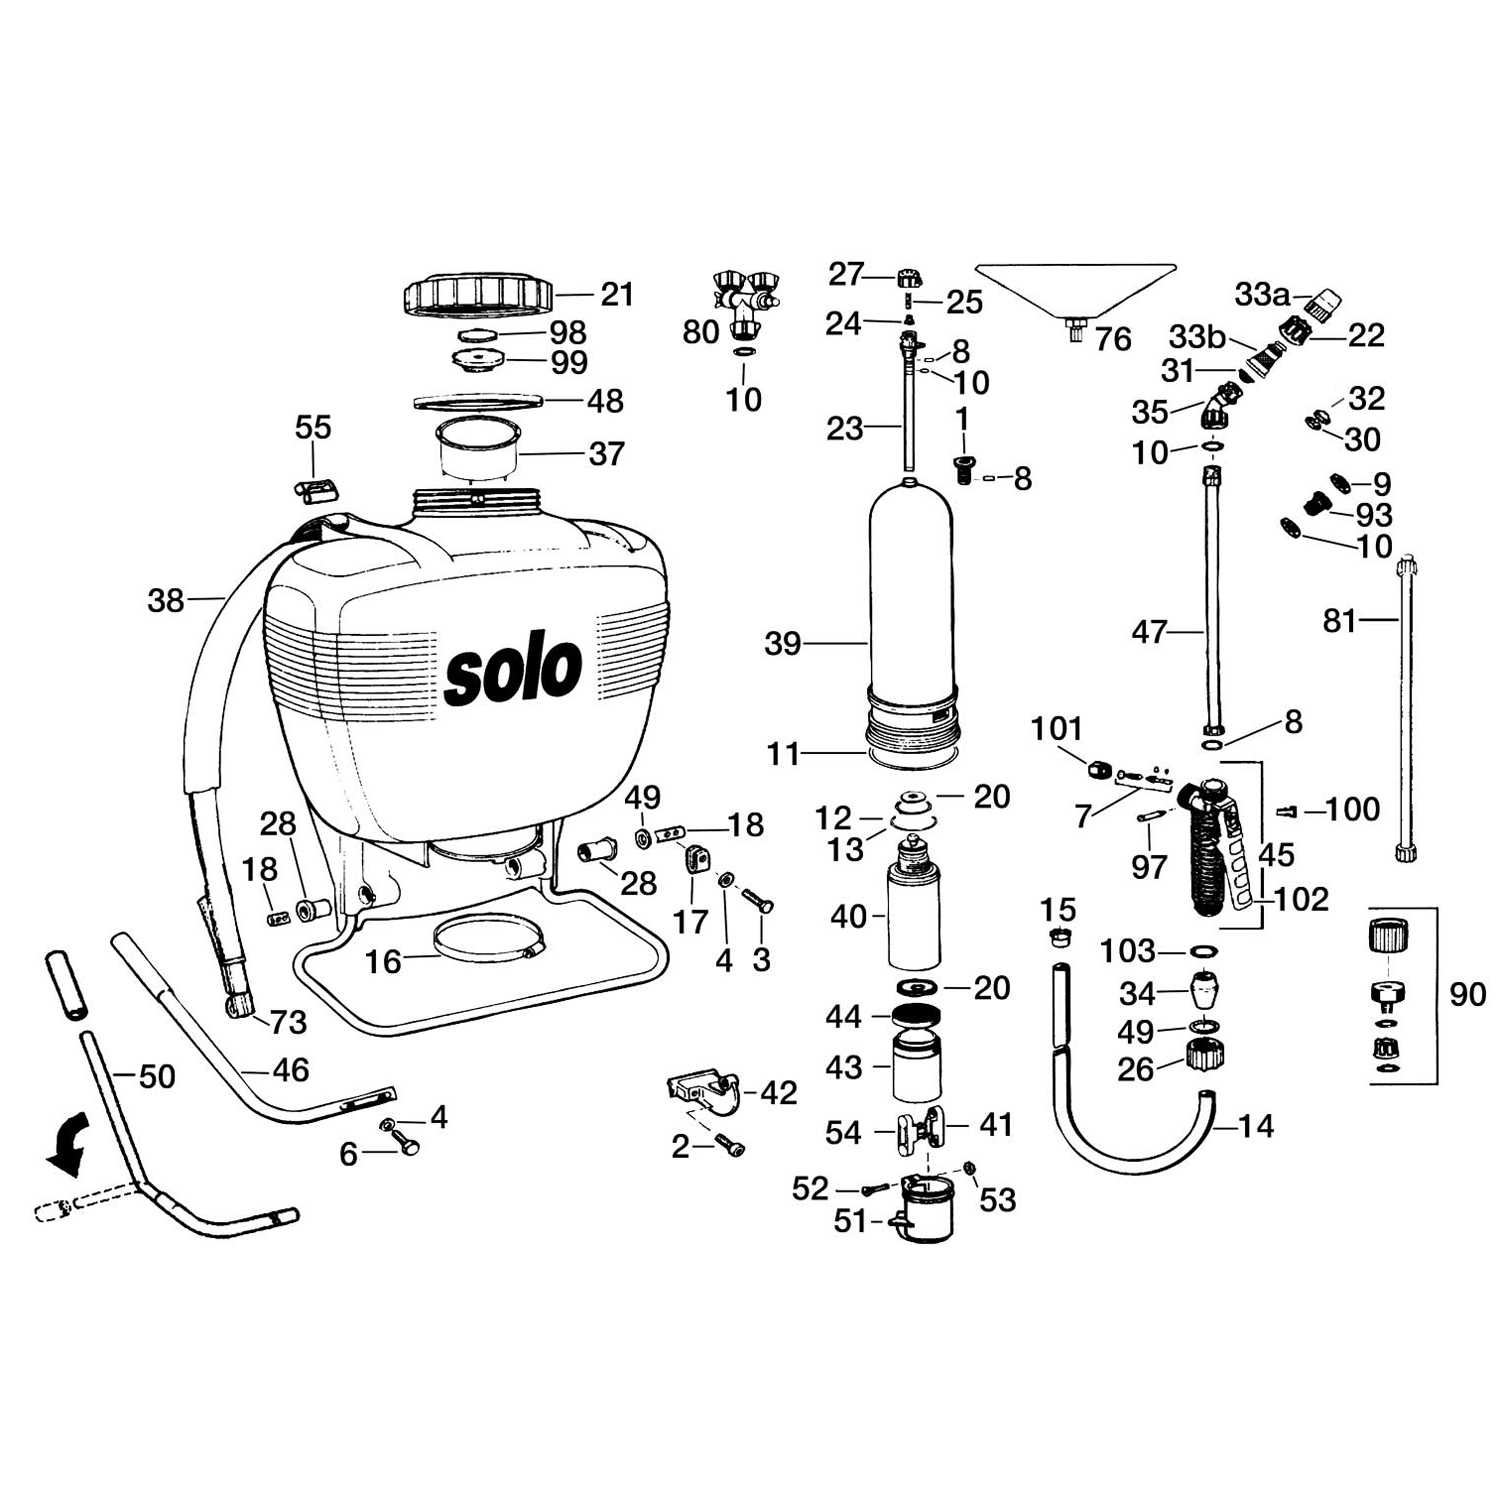 Replacement Parts For Solo Model